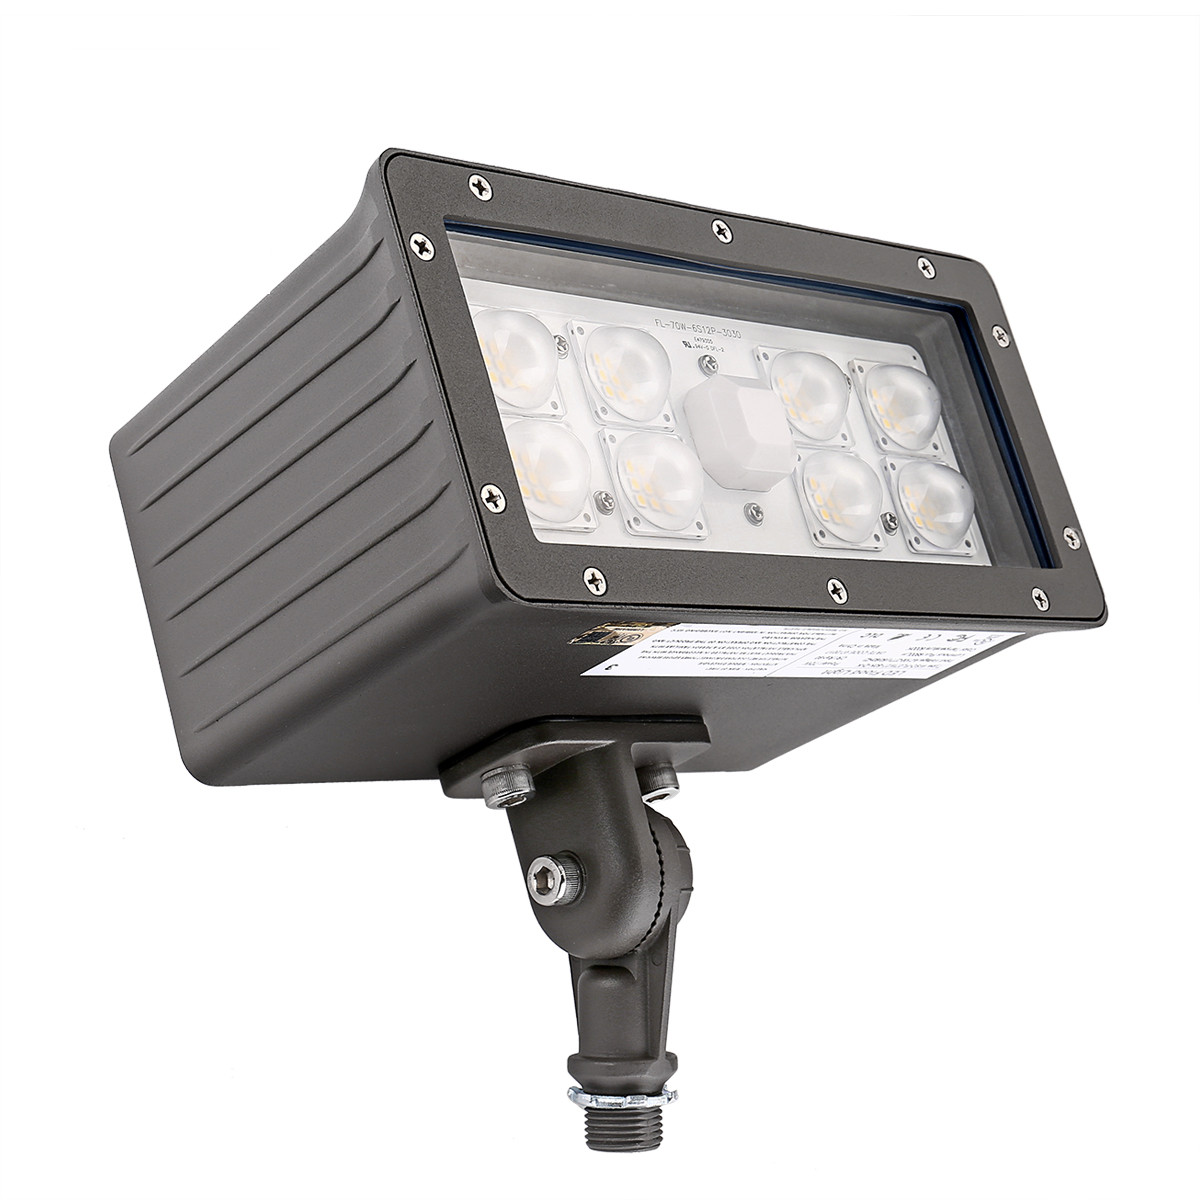 Best ideas about Outdoor Flood Light Fixtures . Save or Pin 70W LED Floodlight 6800lm Daylight White 5000K Waterproof Now.